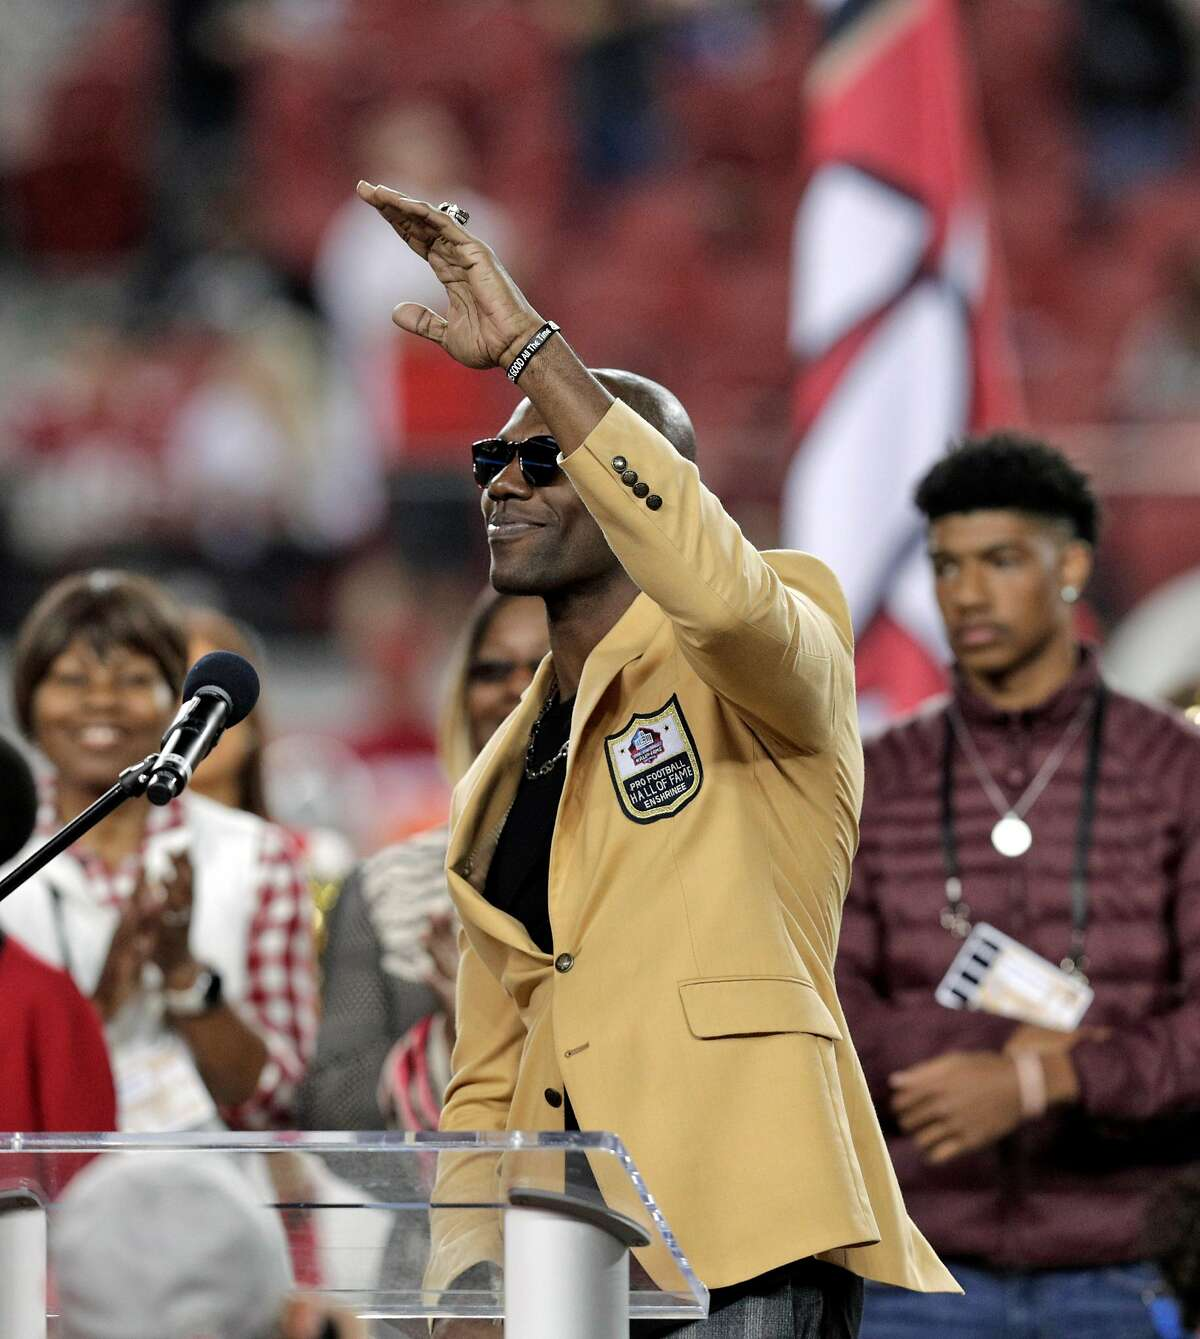 Terrell Owens waves to the crowd after recieving his Hall of Fame ring during a half time ceremony as the San Francisco 49ers played the Oakland Raiders at Levi's Stadium in Santa Clara, Calif., on Thursday, November 1, 2018.